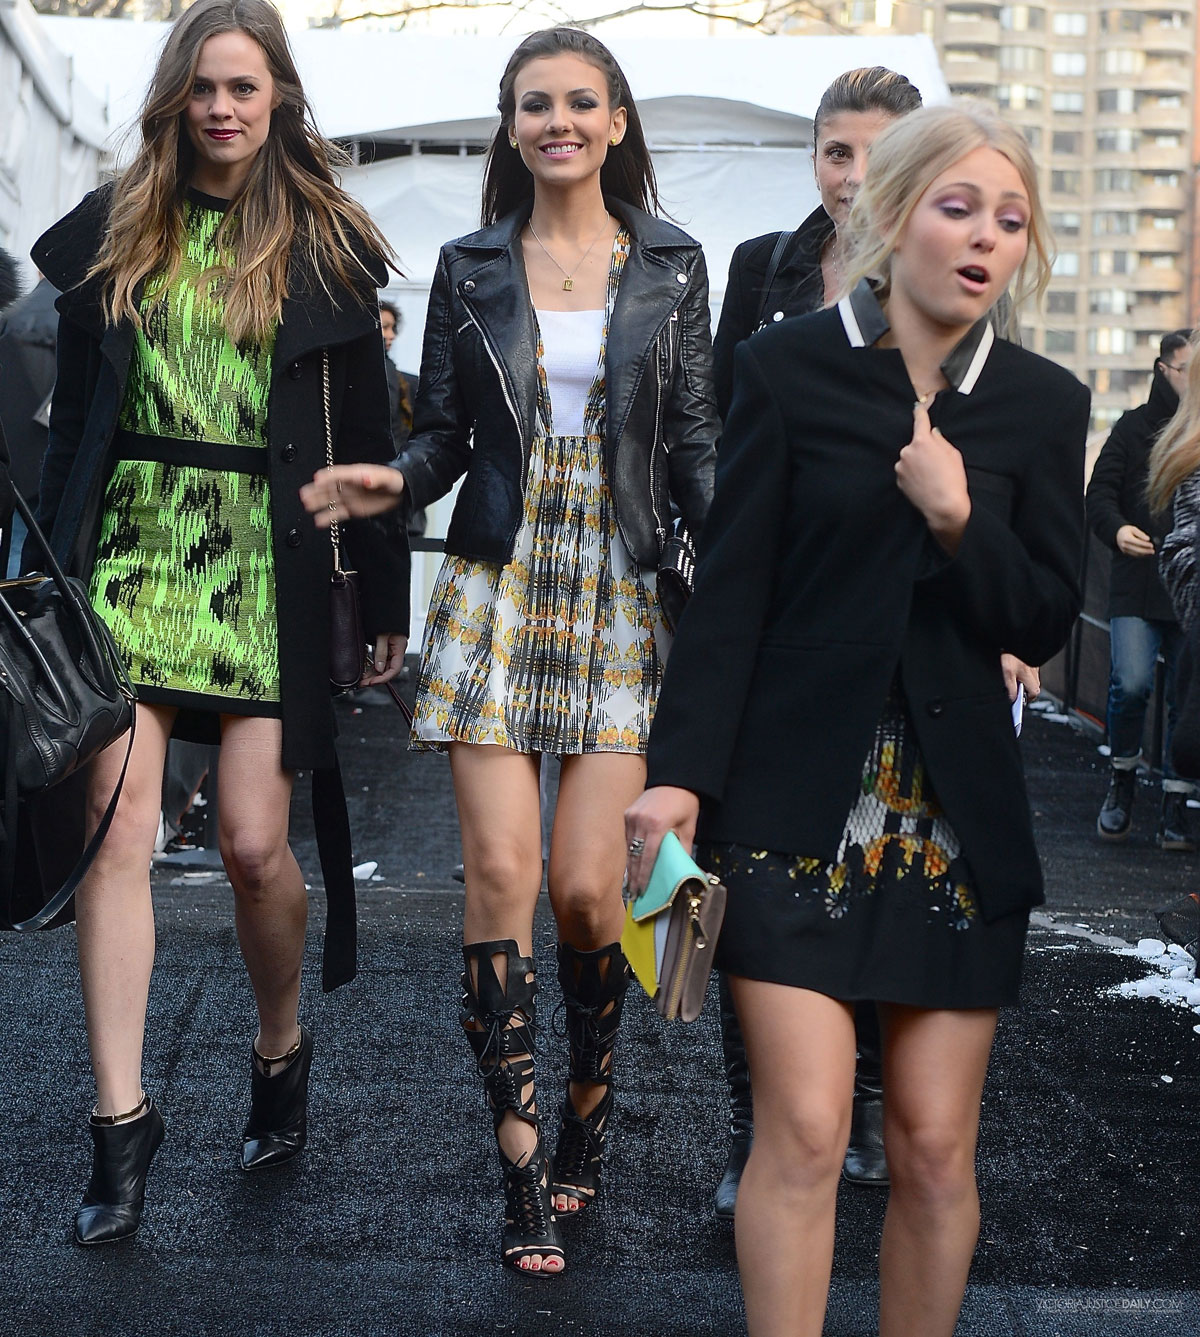 Victoria Justice leaving RM Fashion Show